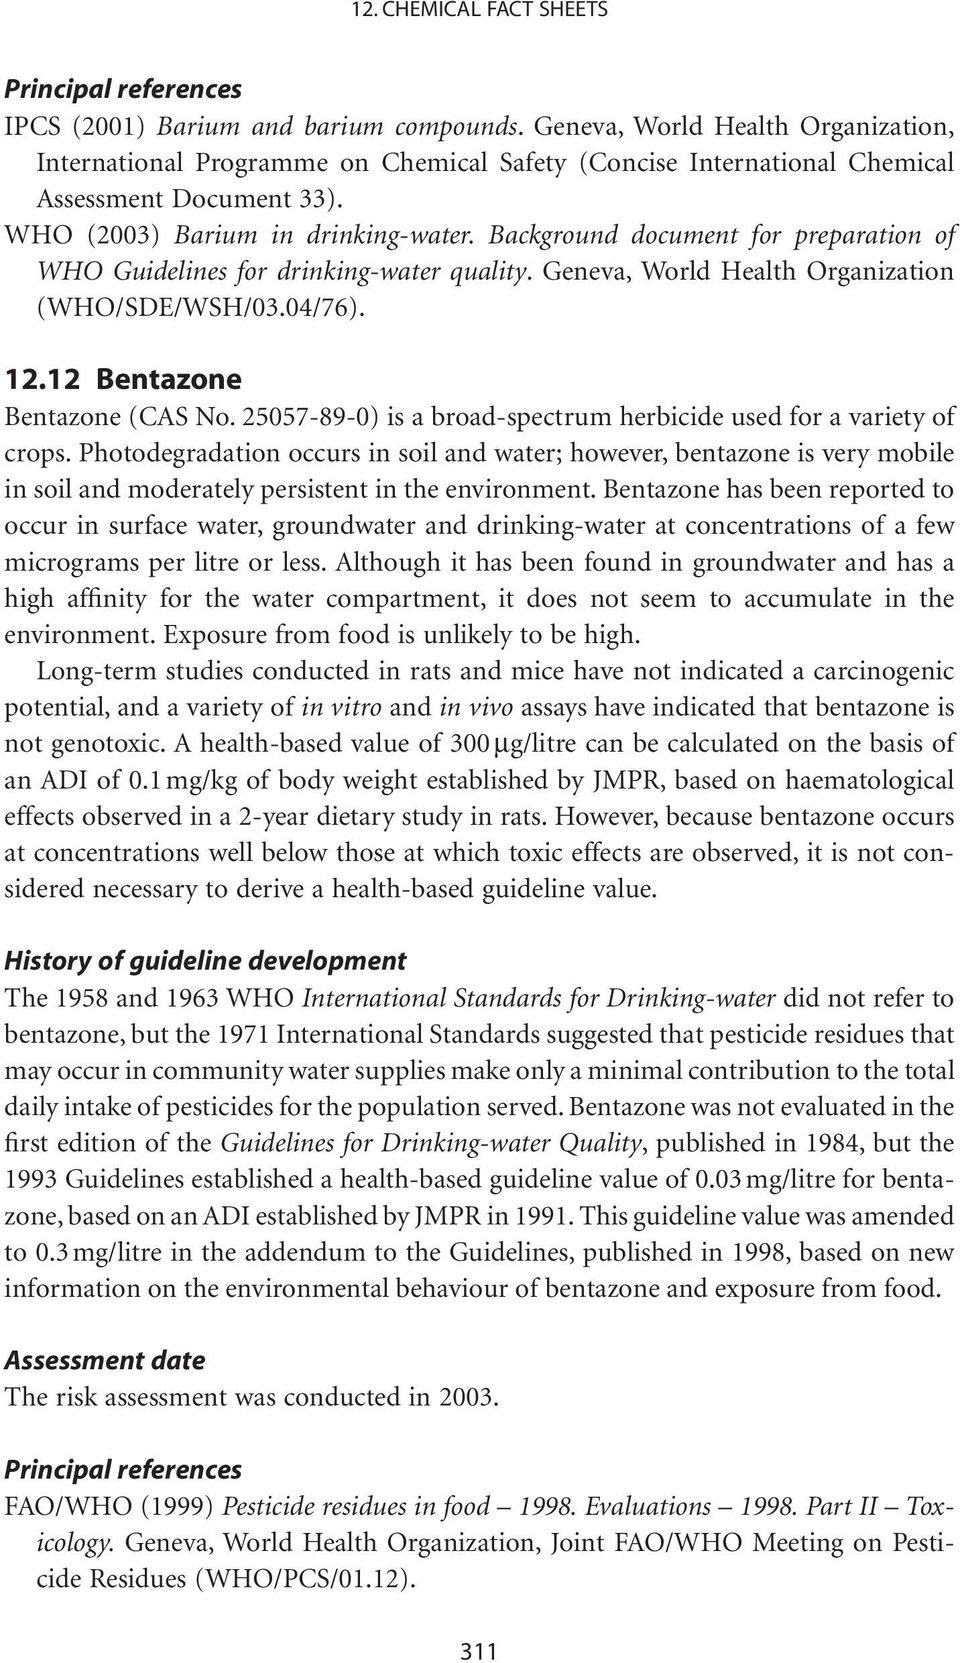 Background document for preparation of WHO Guidelines for drinking-water quality. Geneva, World Health Organization (WHO/SDE/WSH/03.04/76). 12.12 Bentazone Bentazone (CAS No.